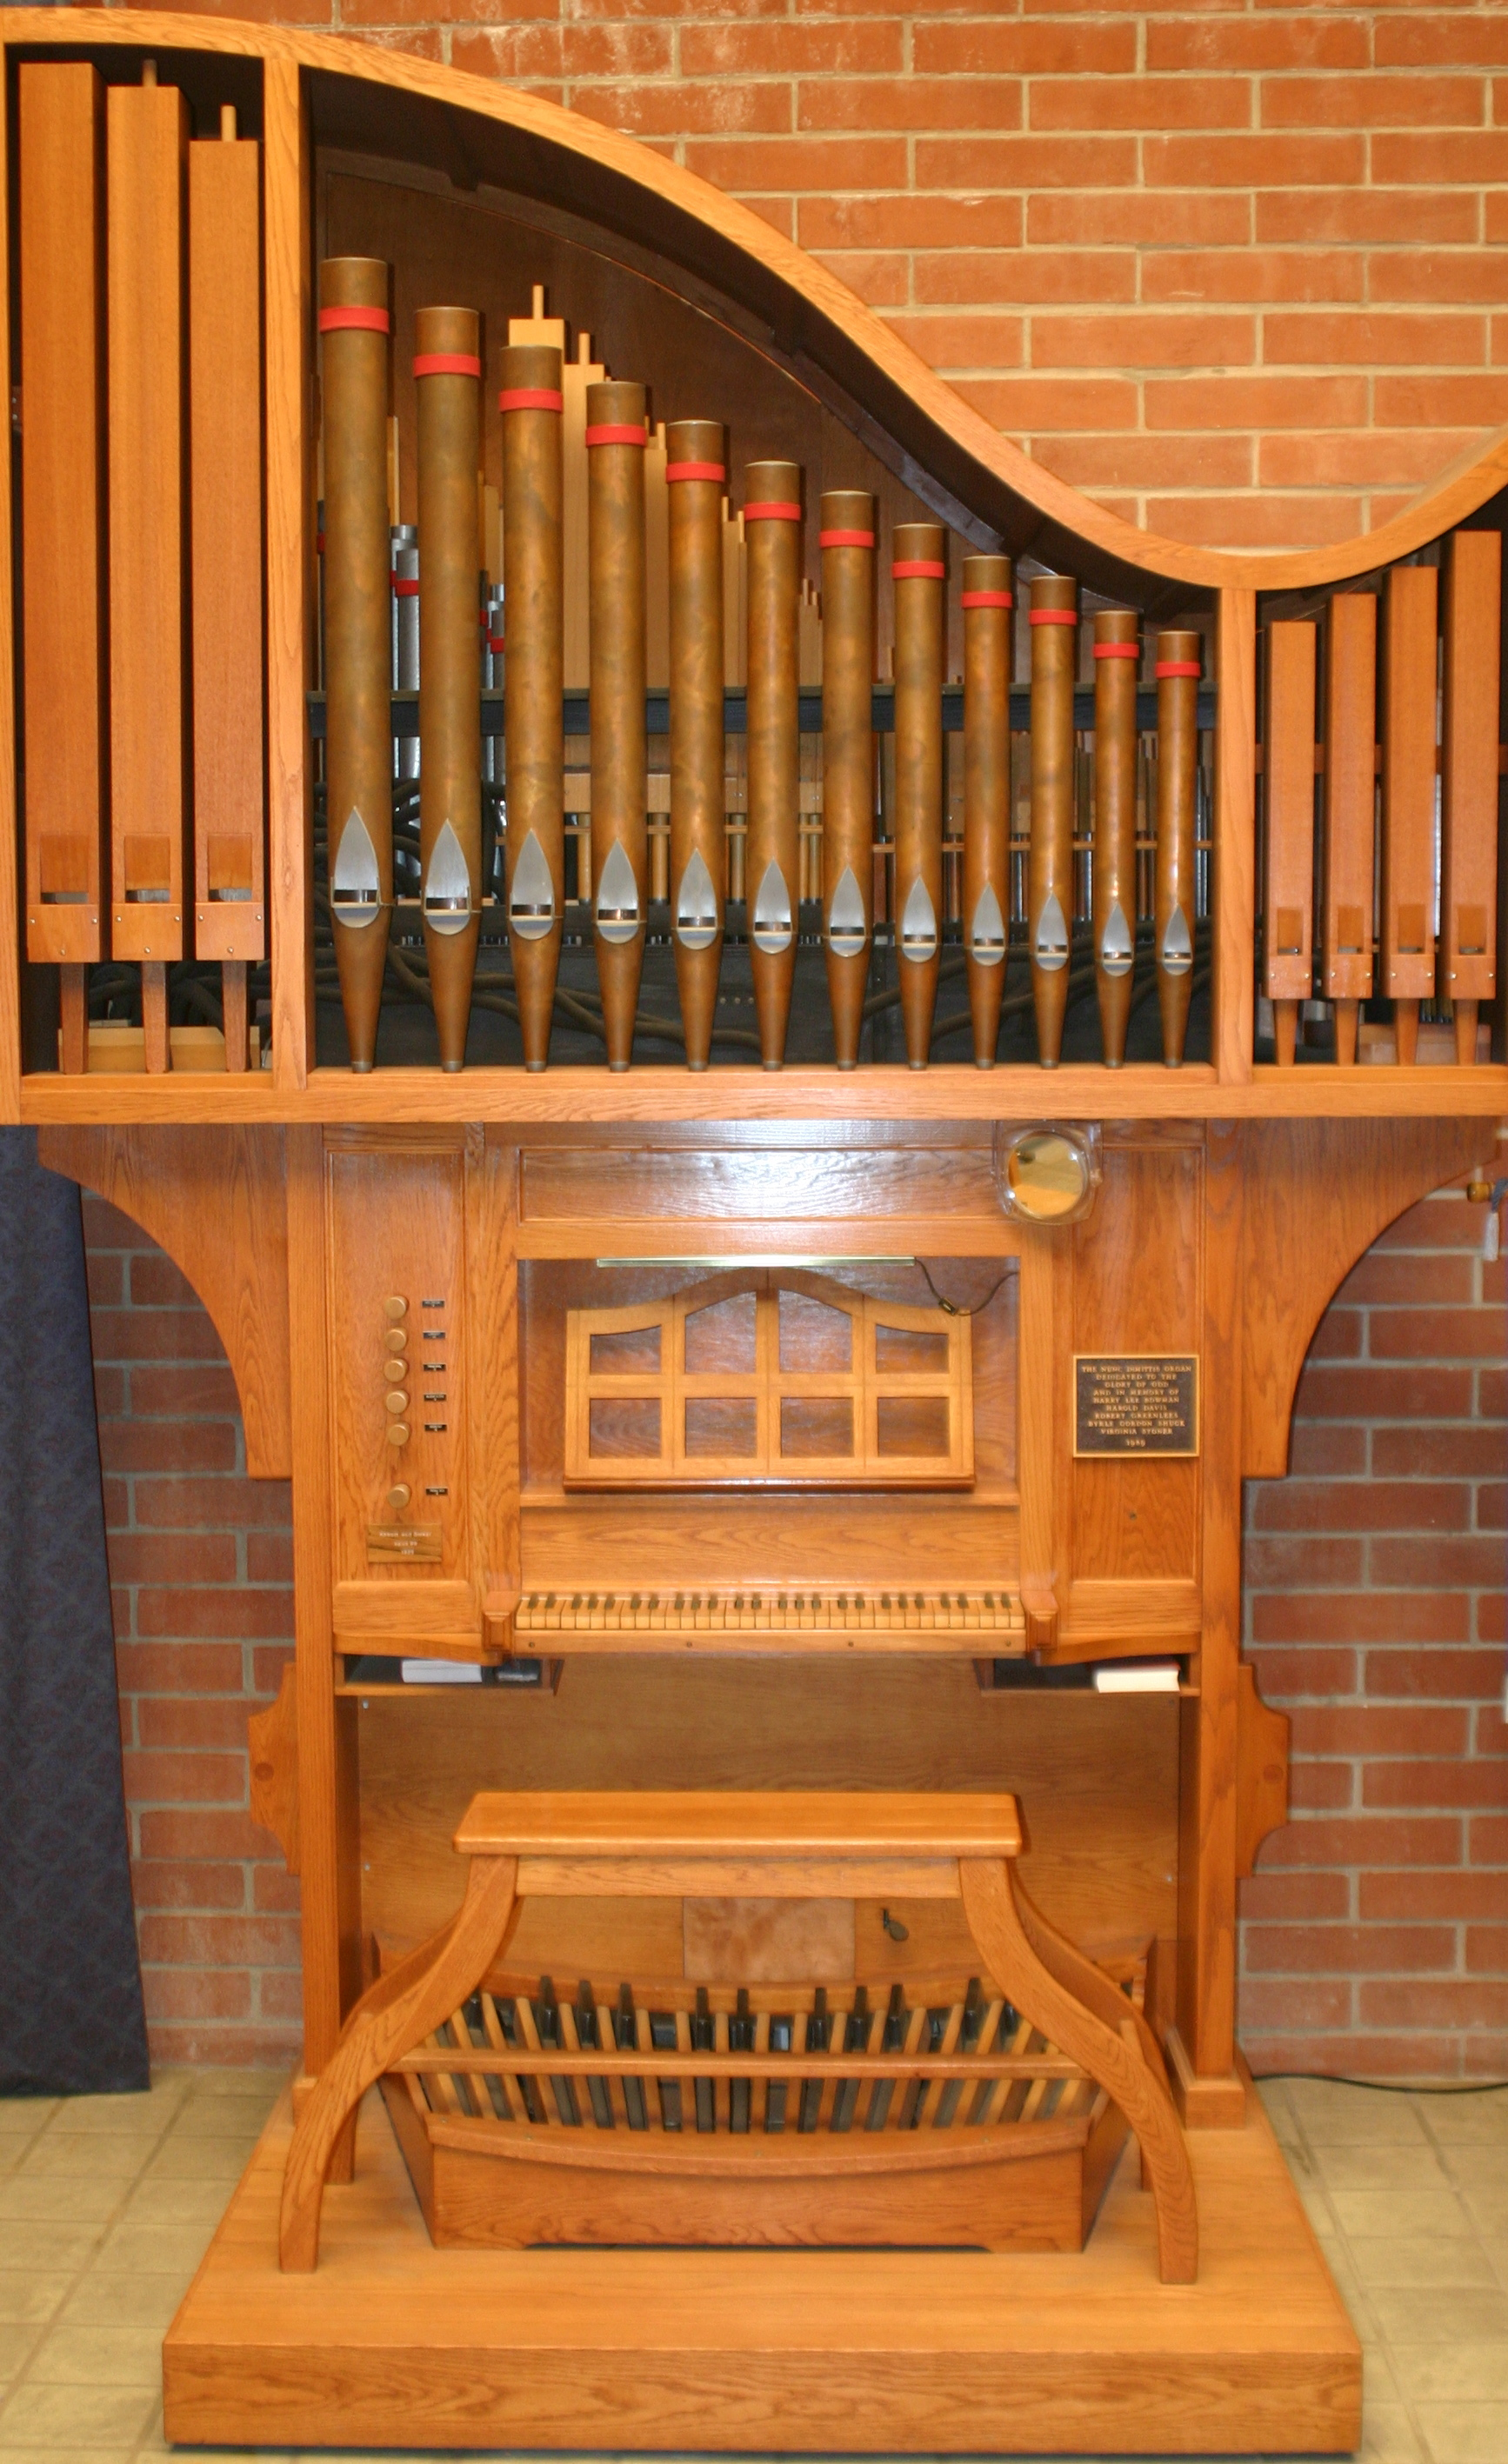 Full chapel organ img_33921